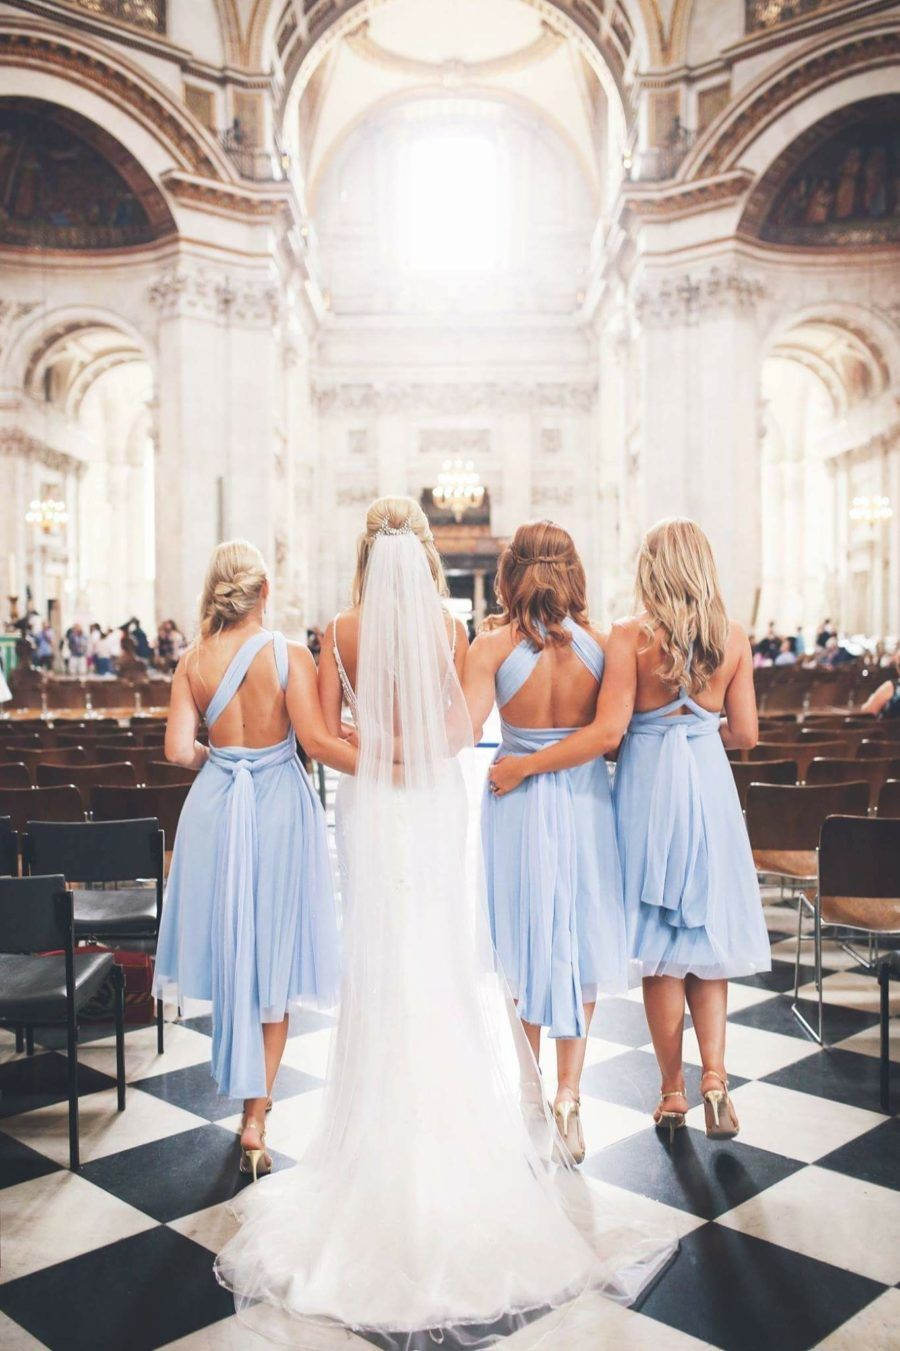 Powder Blue Twobirds Bridesmaid Dresses A Real Wedding Featuring Our Multiway Convertible Twist Wrap